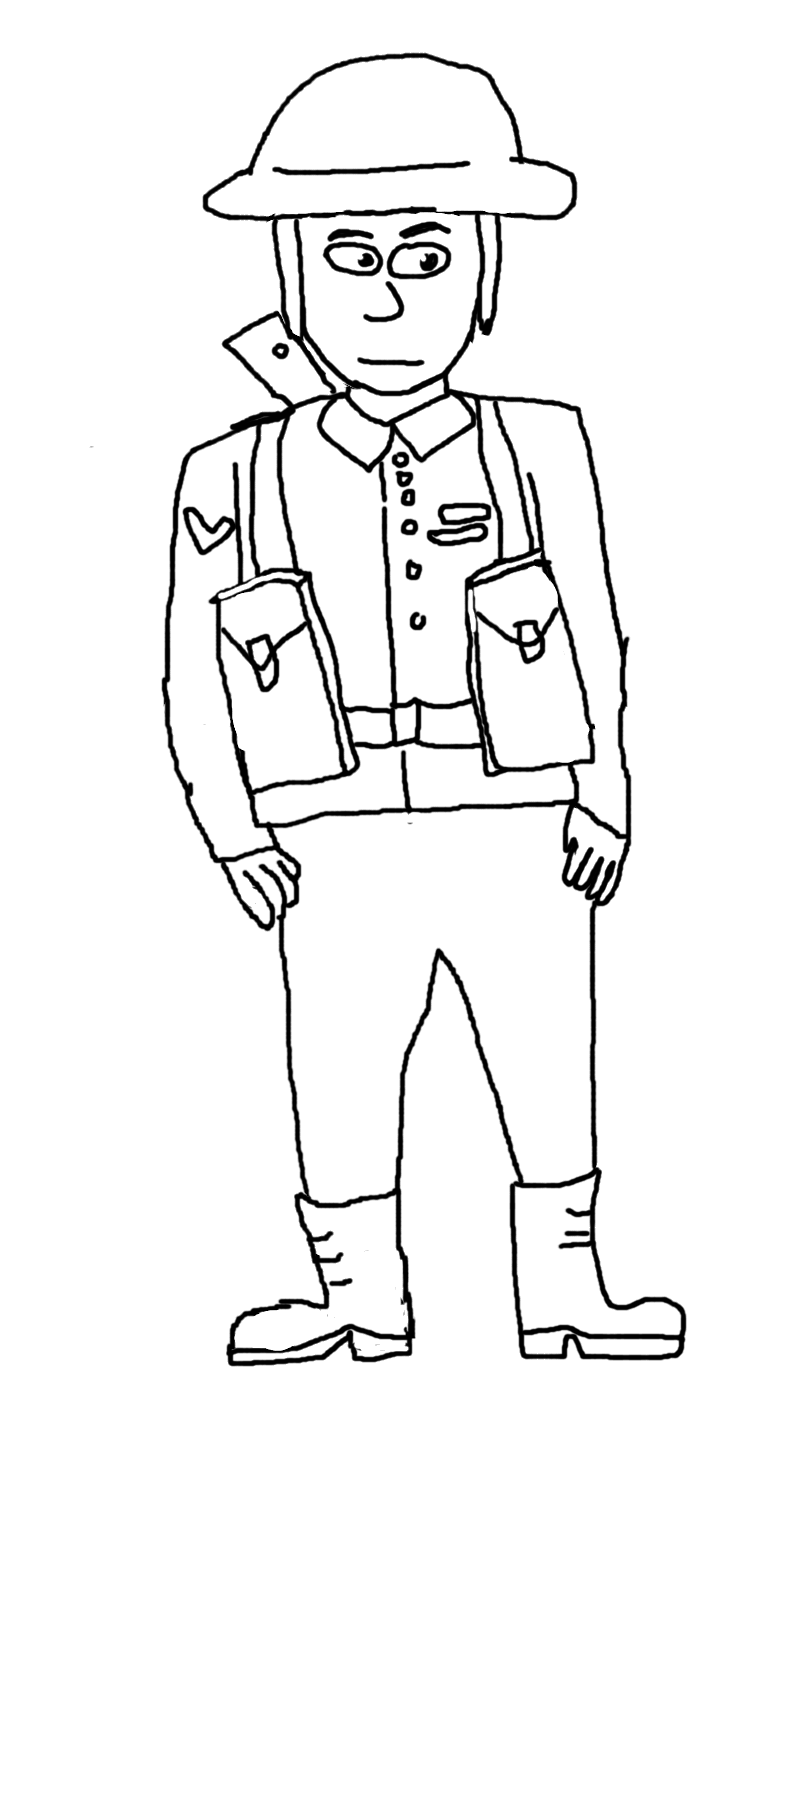 Soldier Outline Drawing